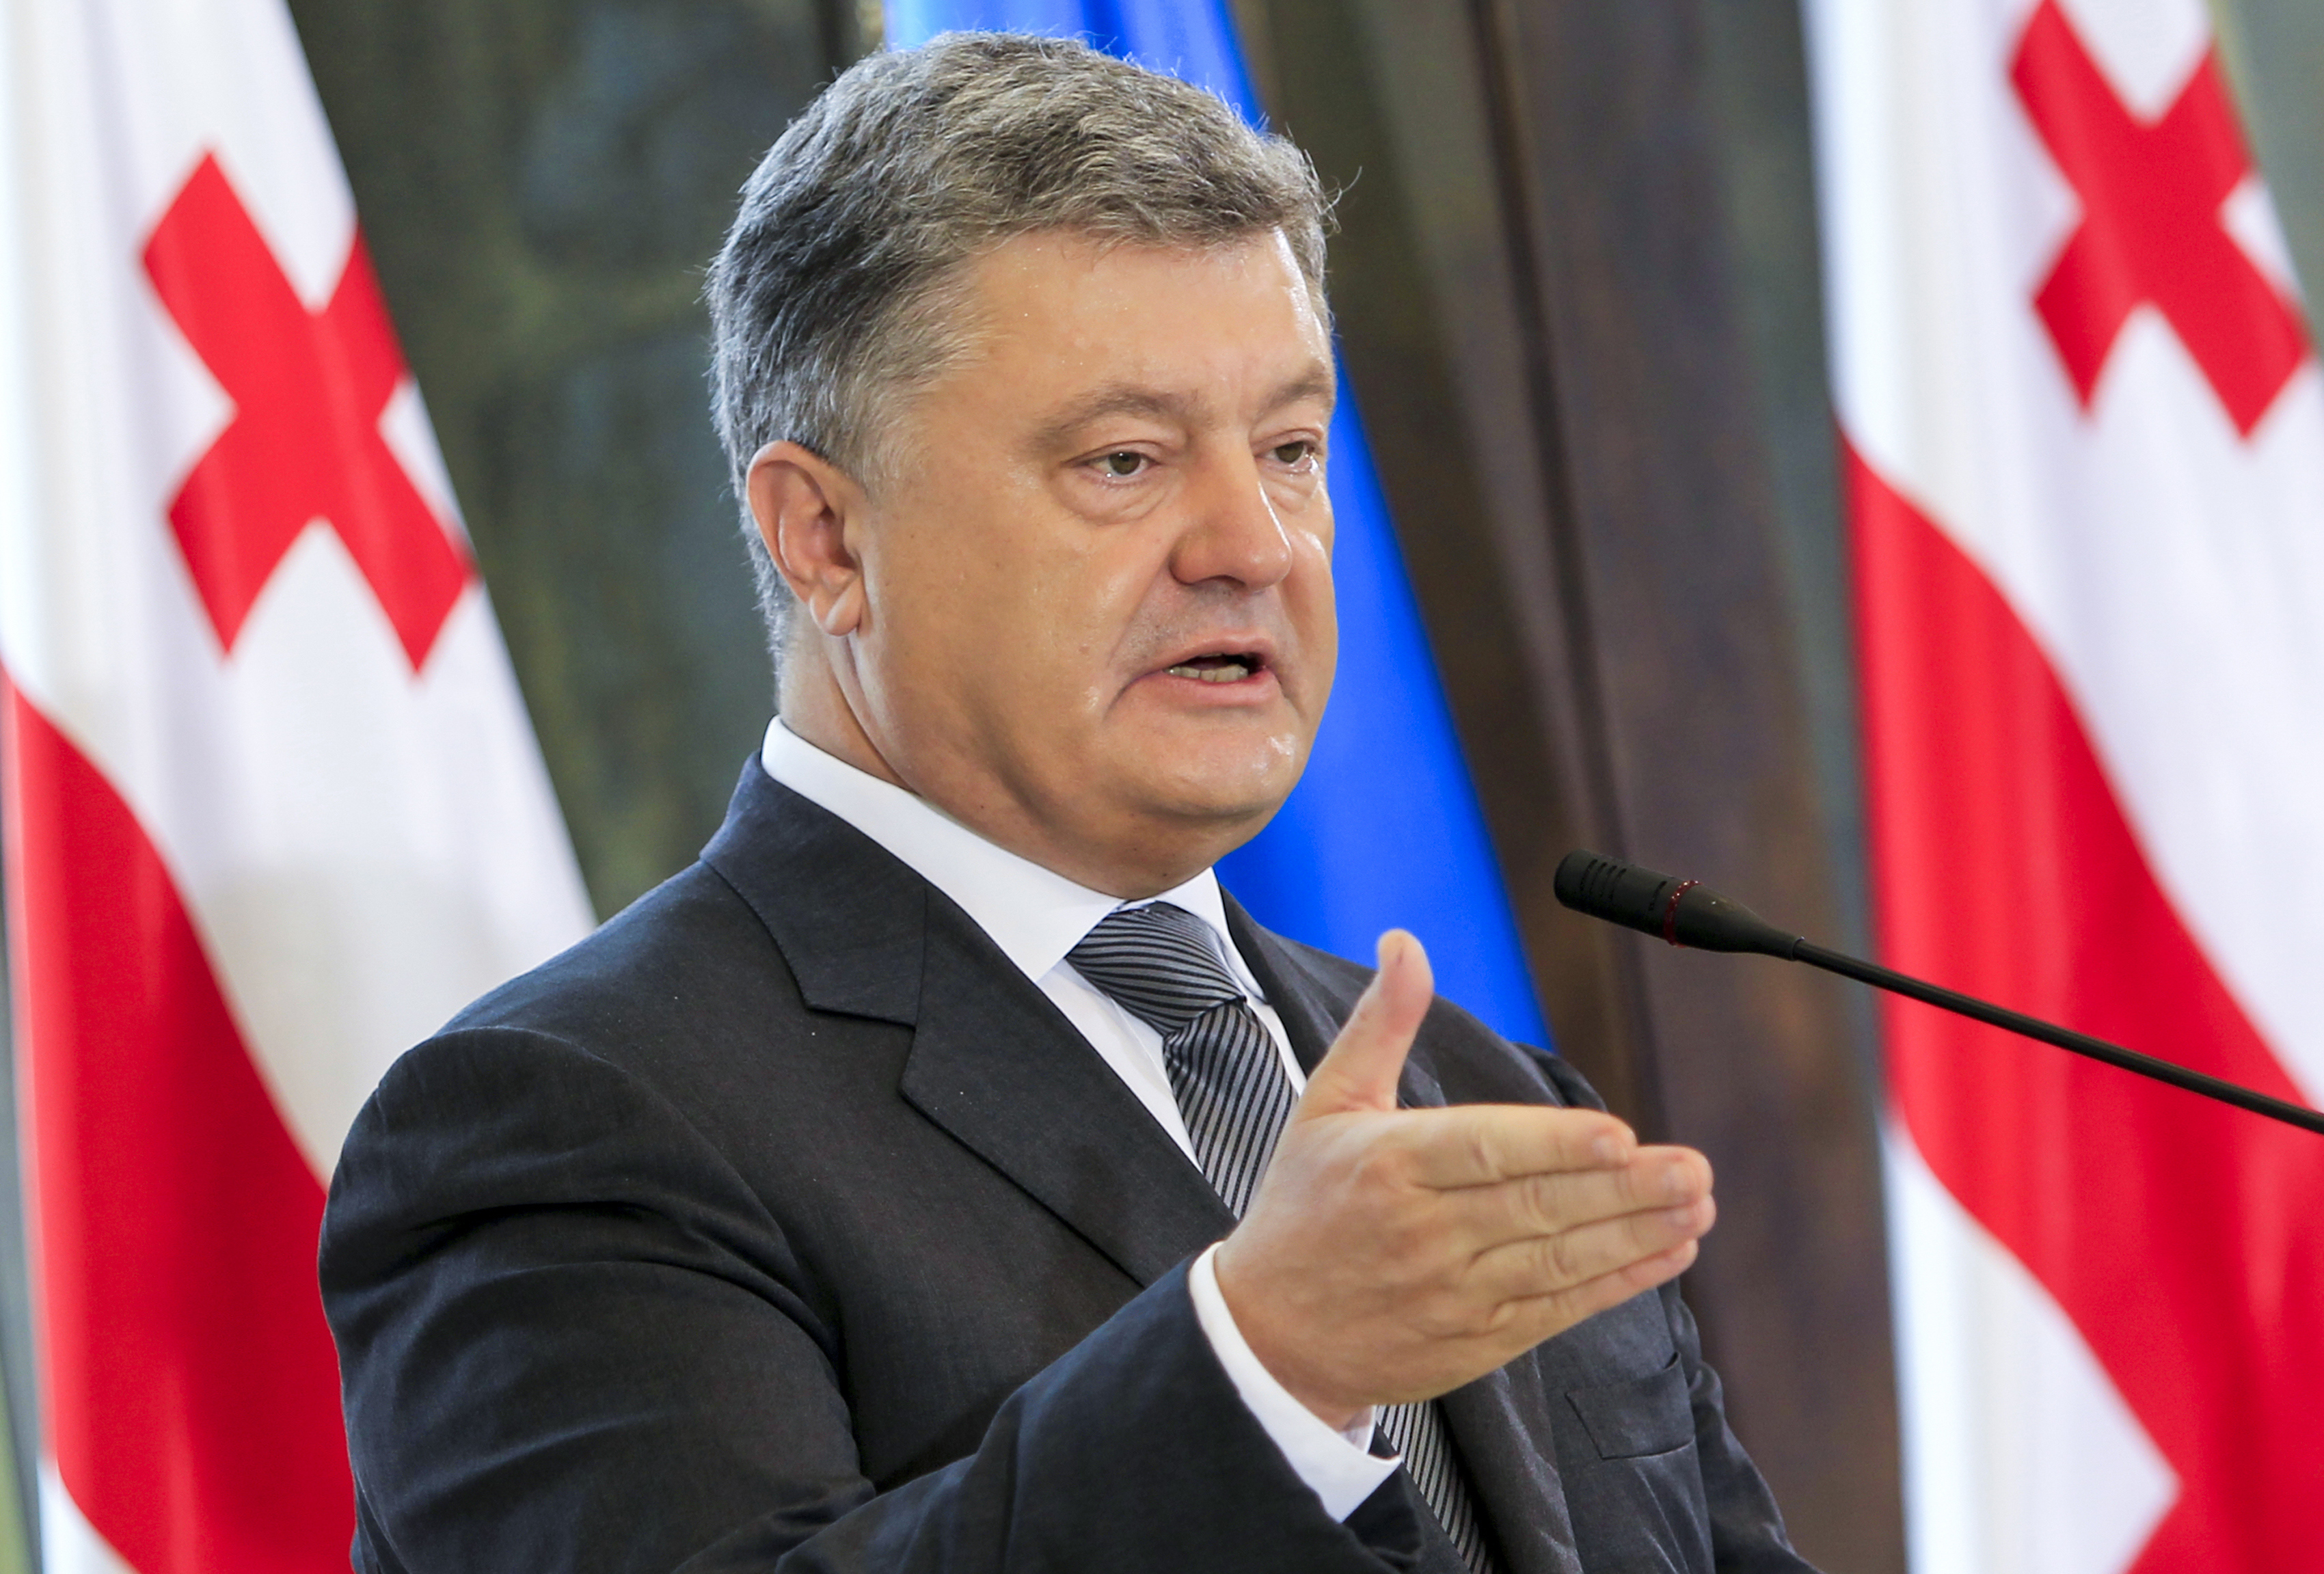 Ukrainian President Petro Poroshenko speaks at a press conference during his meeting with Georgian President Georgy Margvelashvili in Tbilisi, Georgia, 18 July 2017. Petro Poroshenko is on an official visit to Georgia.  (AP Photo/Shakh Aivazov)